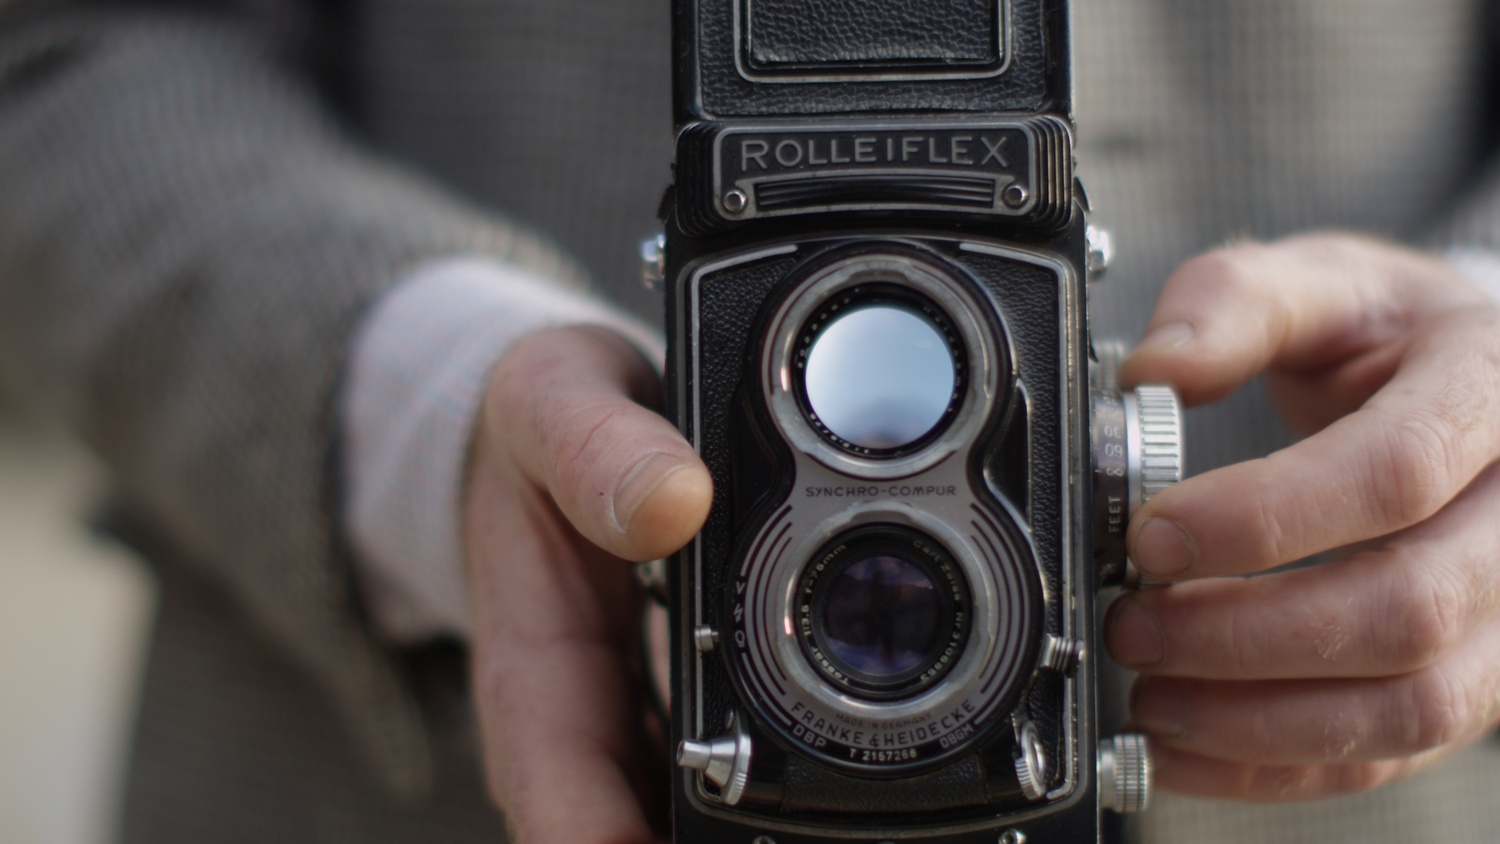 Rolleiflex in action by Mark Whatmore